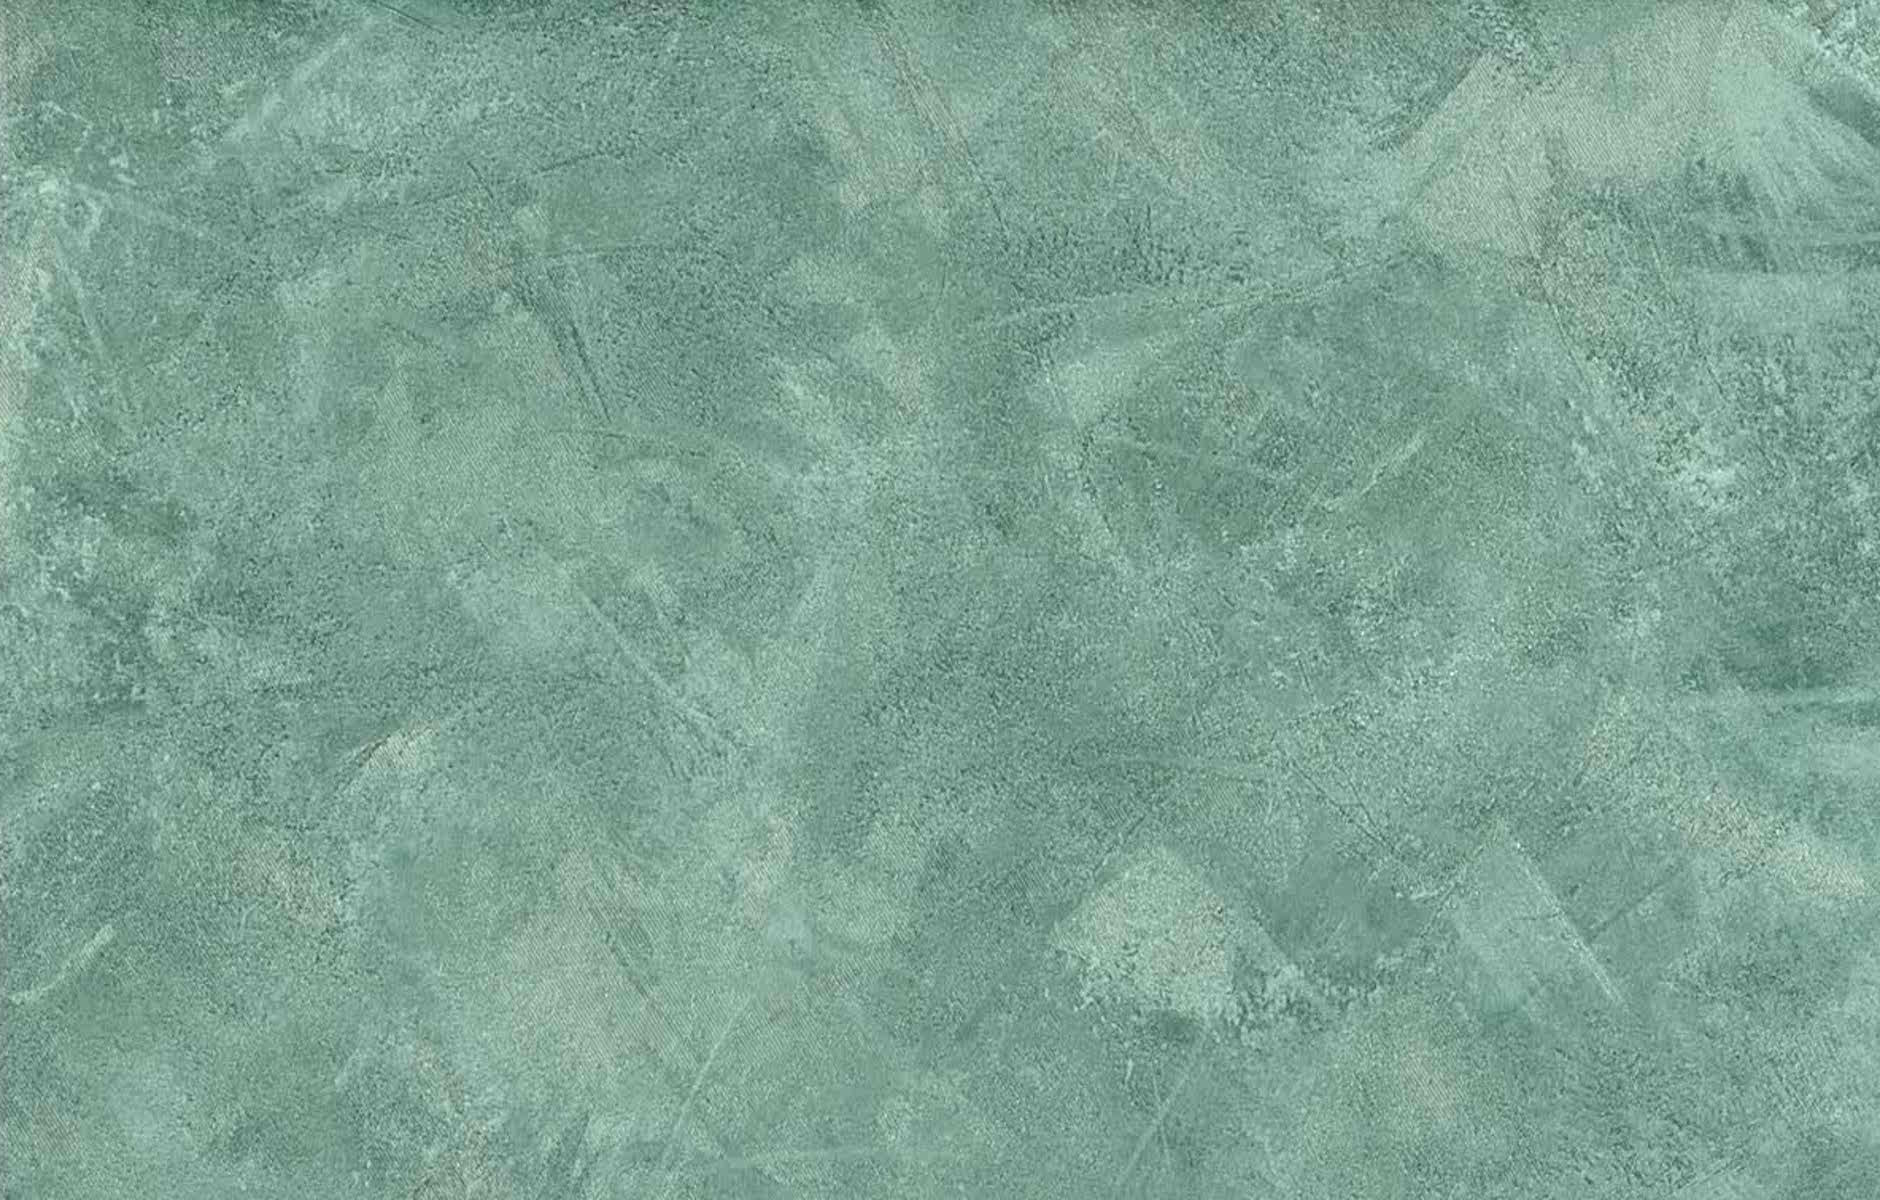 1880x1200 Green Textured Wallpaper Italy Faux Finish ENC-6068